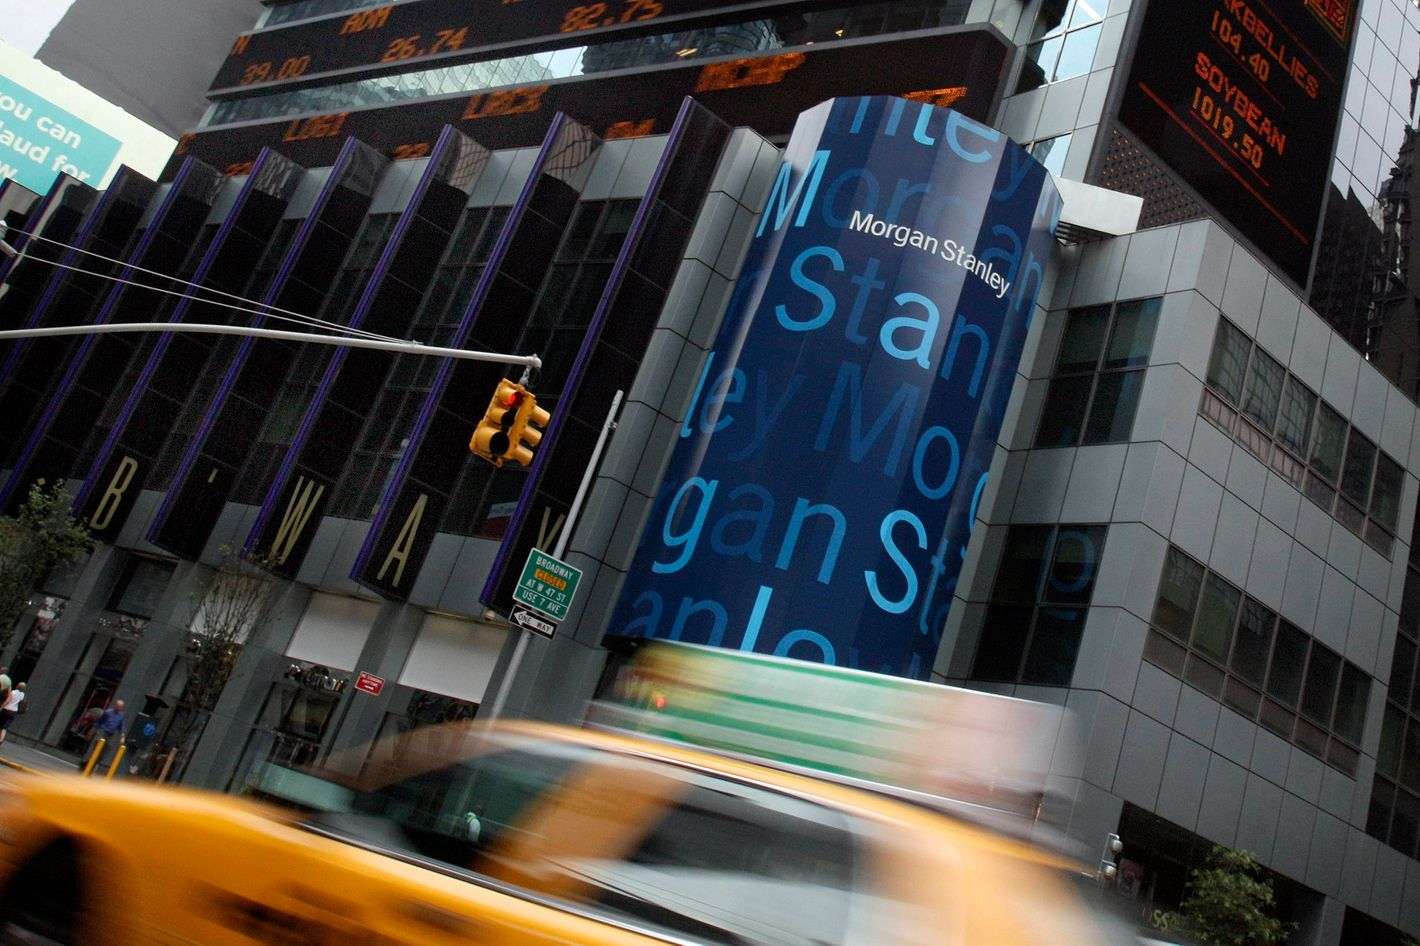 FILE  - In this file photograph taken July 19, 2010, traffic passes the headquarters of Morgan Stanley in New York. Of the 1,600 job cuts announced earlier in Dec. 2011 by Morgan Stanley, 580 will be at its home base in New York. (AP Photo/Richard Drew, file)